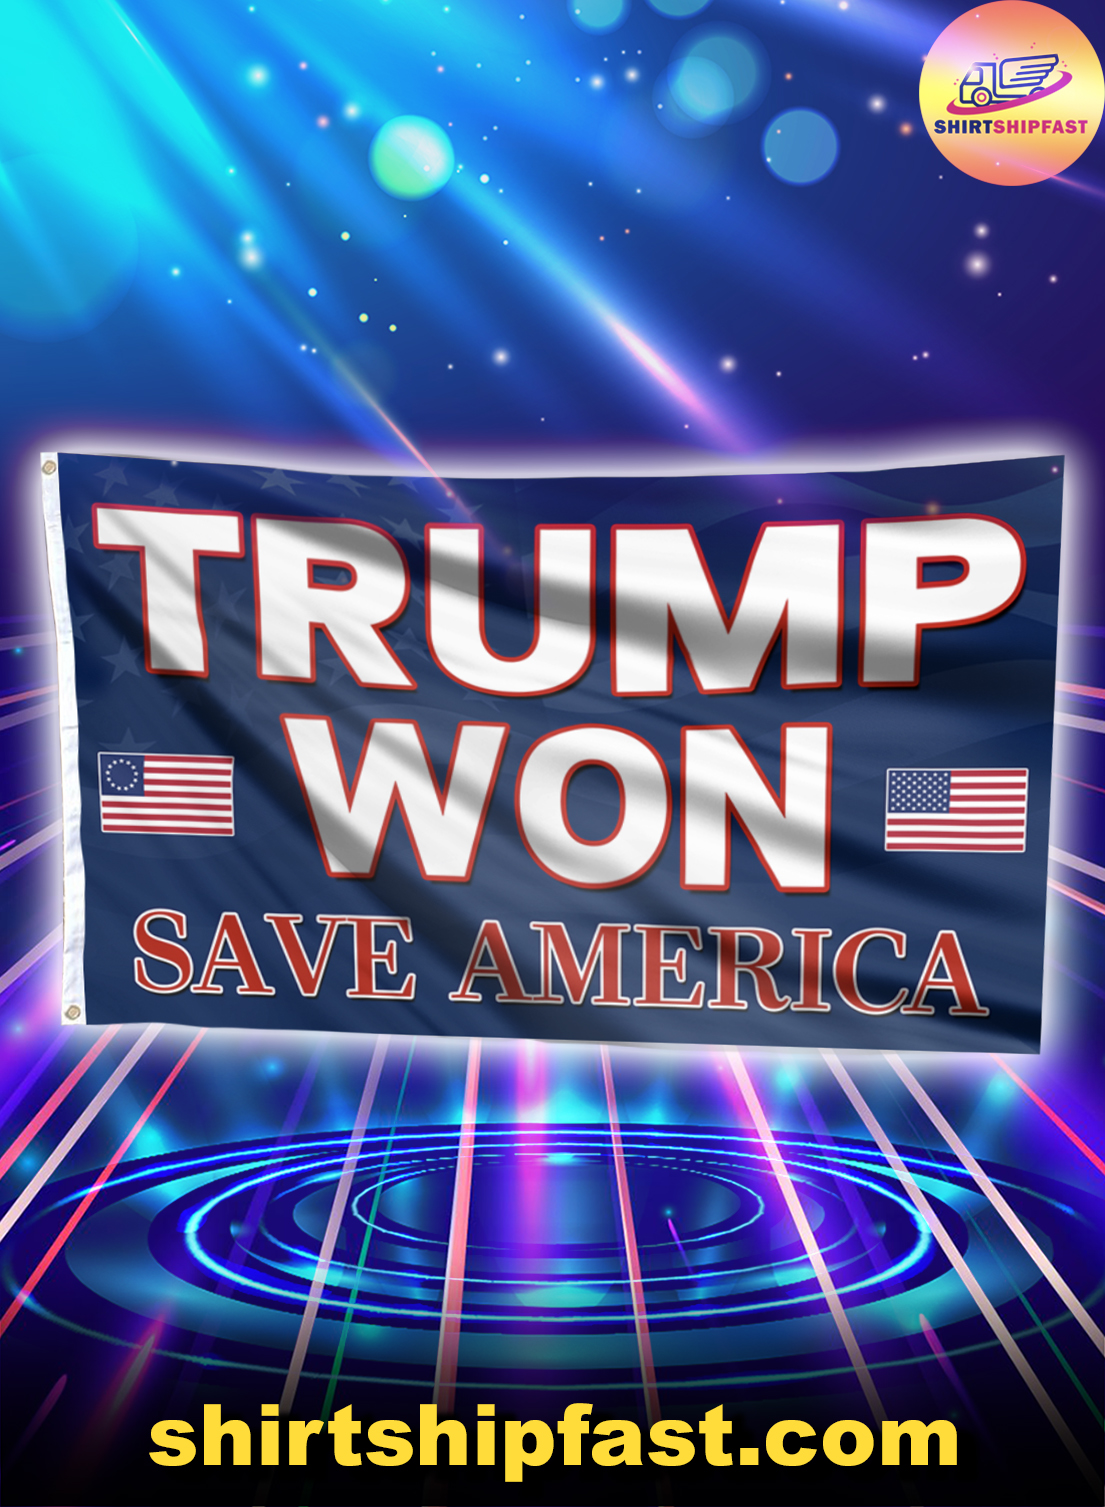 Trump won save America house and garden flag - Picture 1